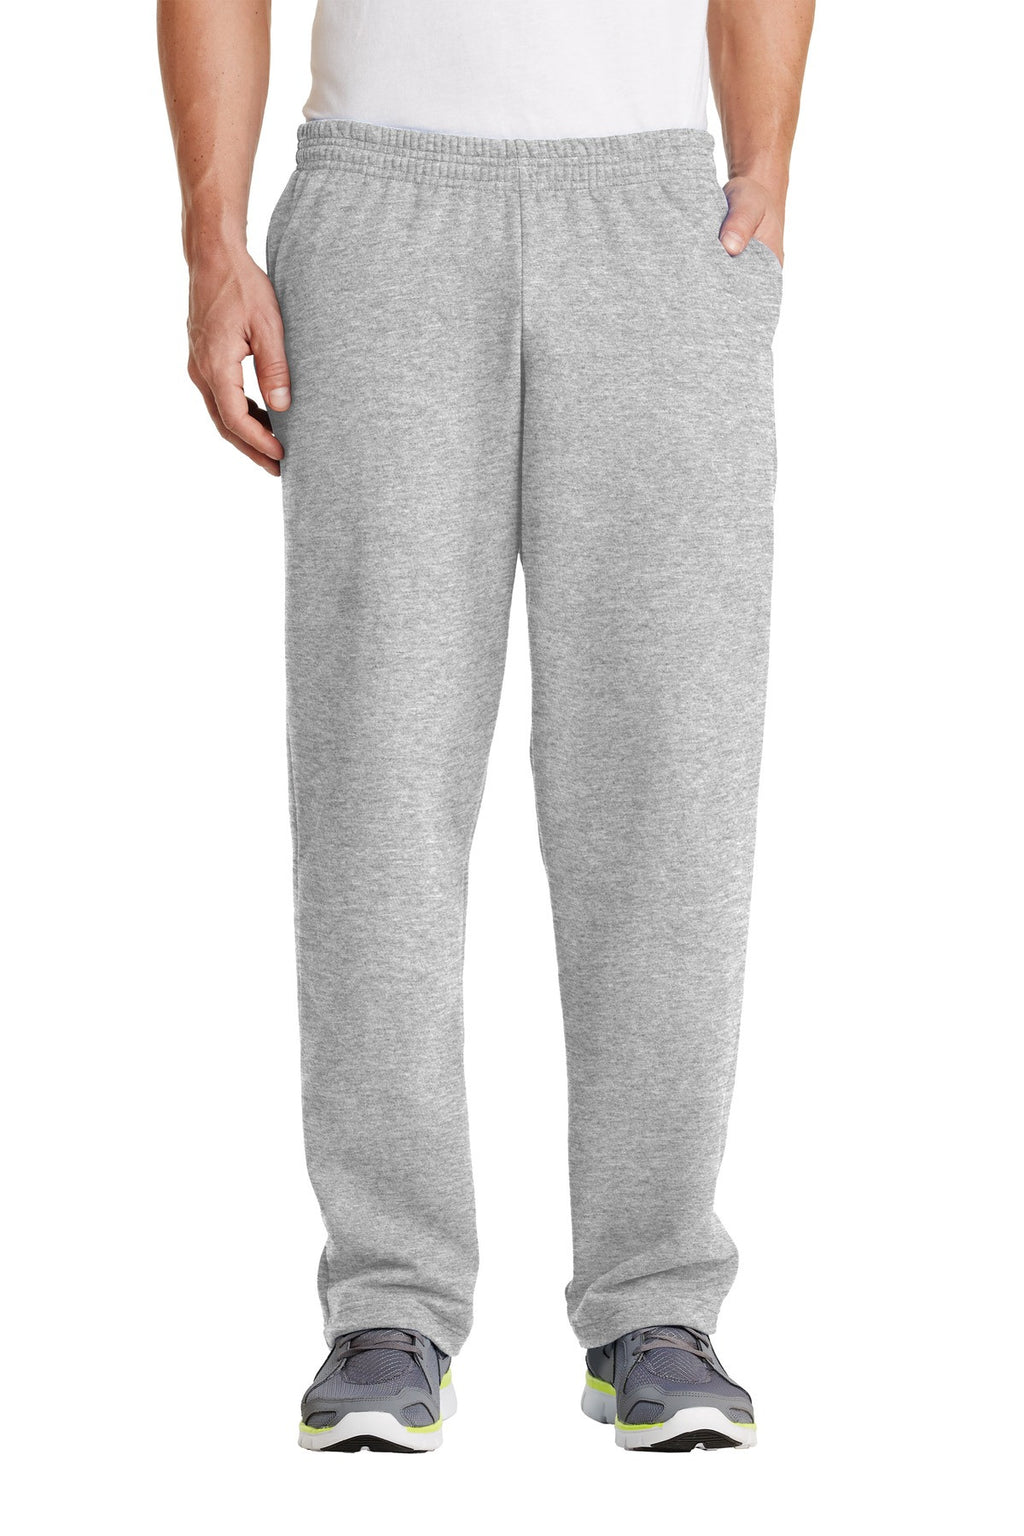 Port & Company Classic Open Bottom Sweatpant With Pockets-1